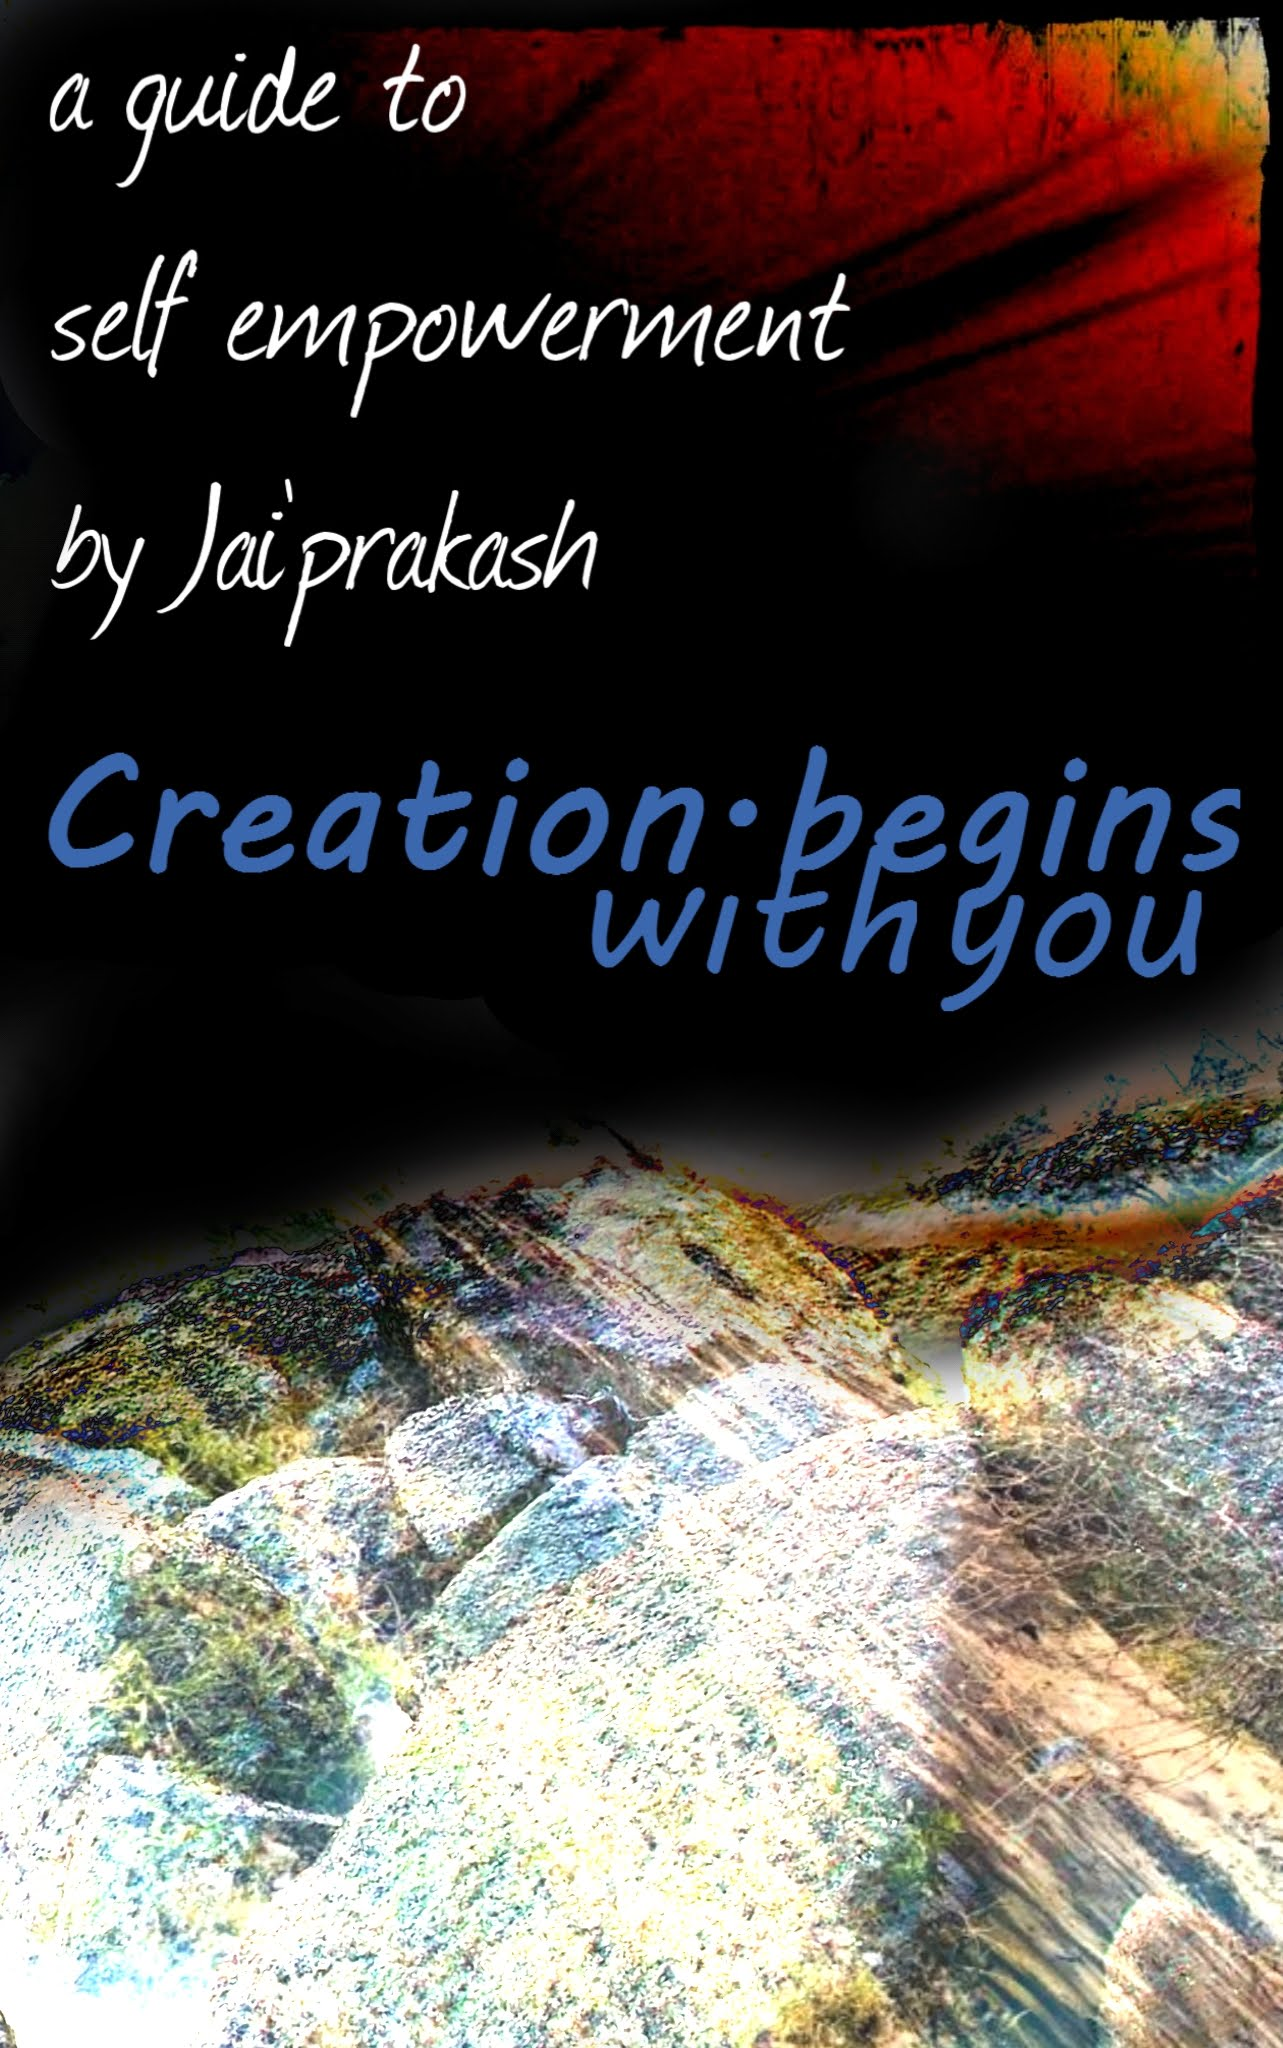 Creation.begins with you book cover